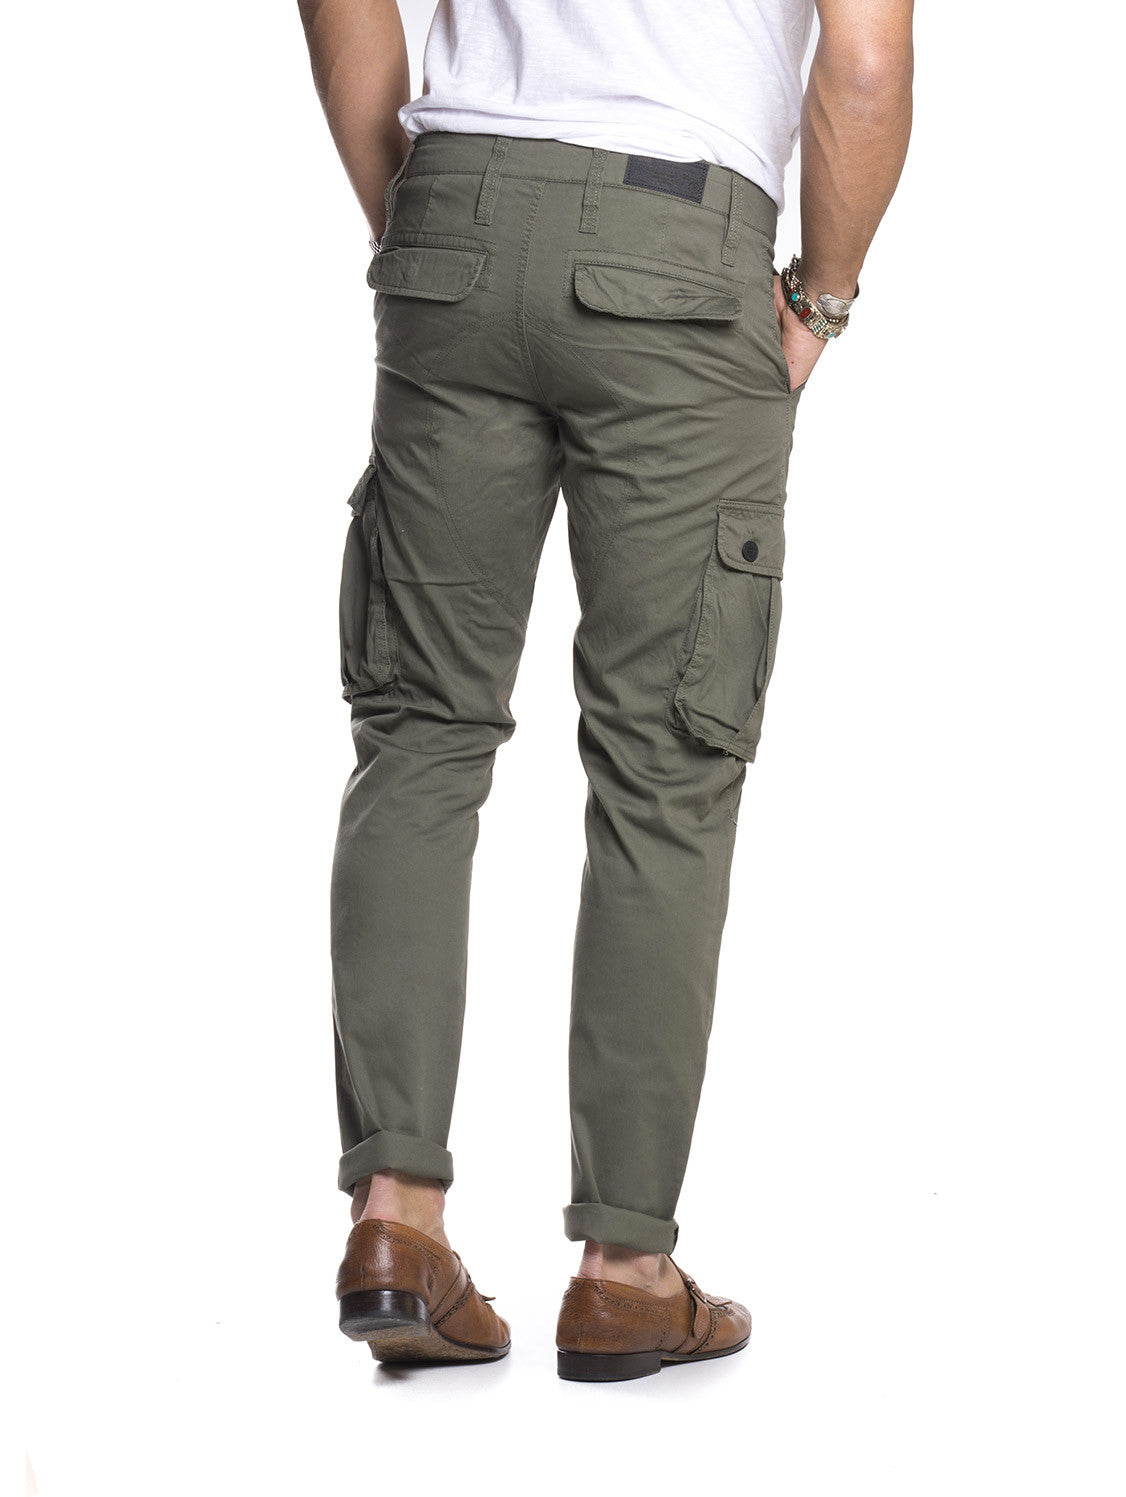 Men's Trousers Spring Summer Collection Nohow Style